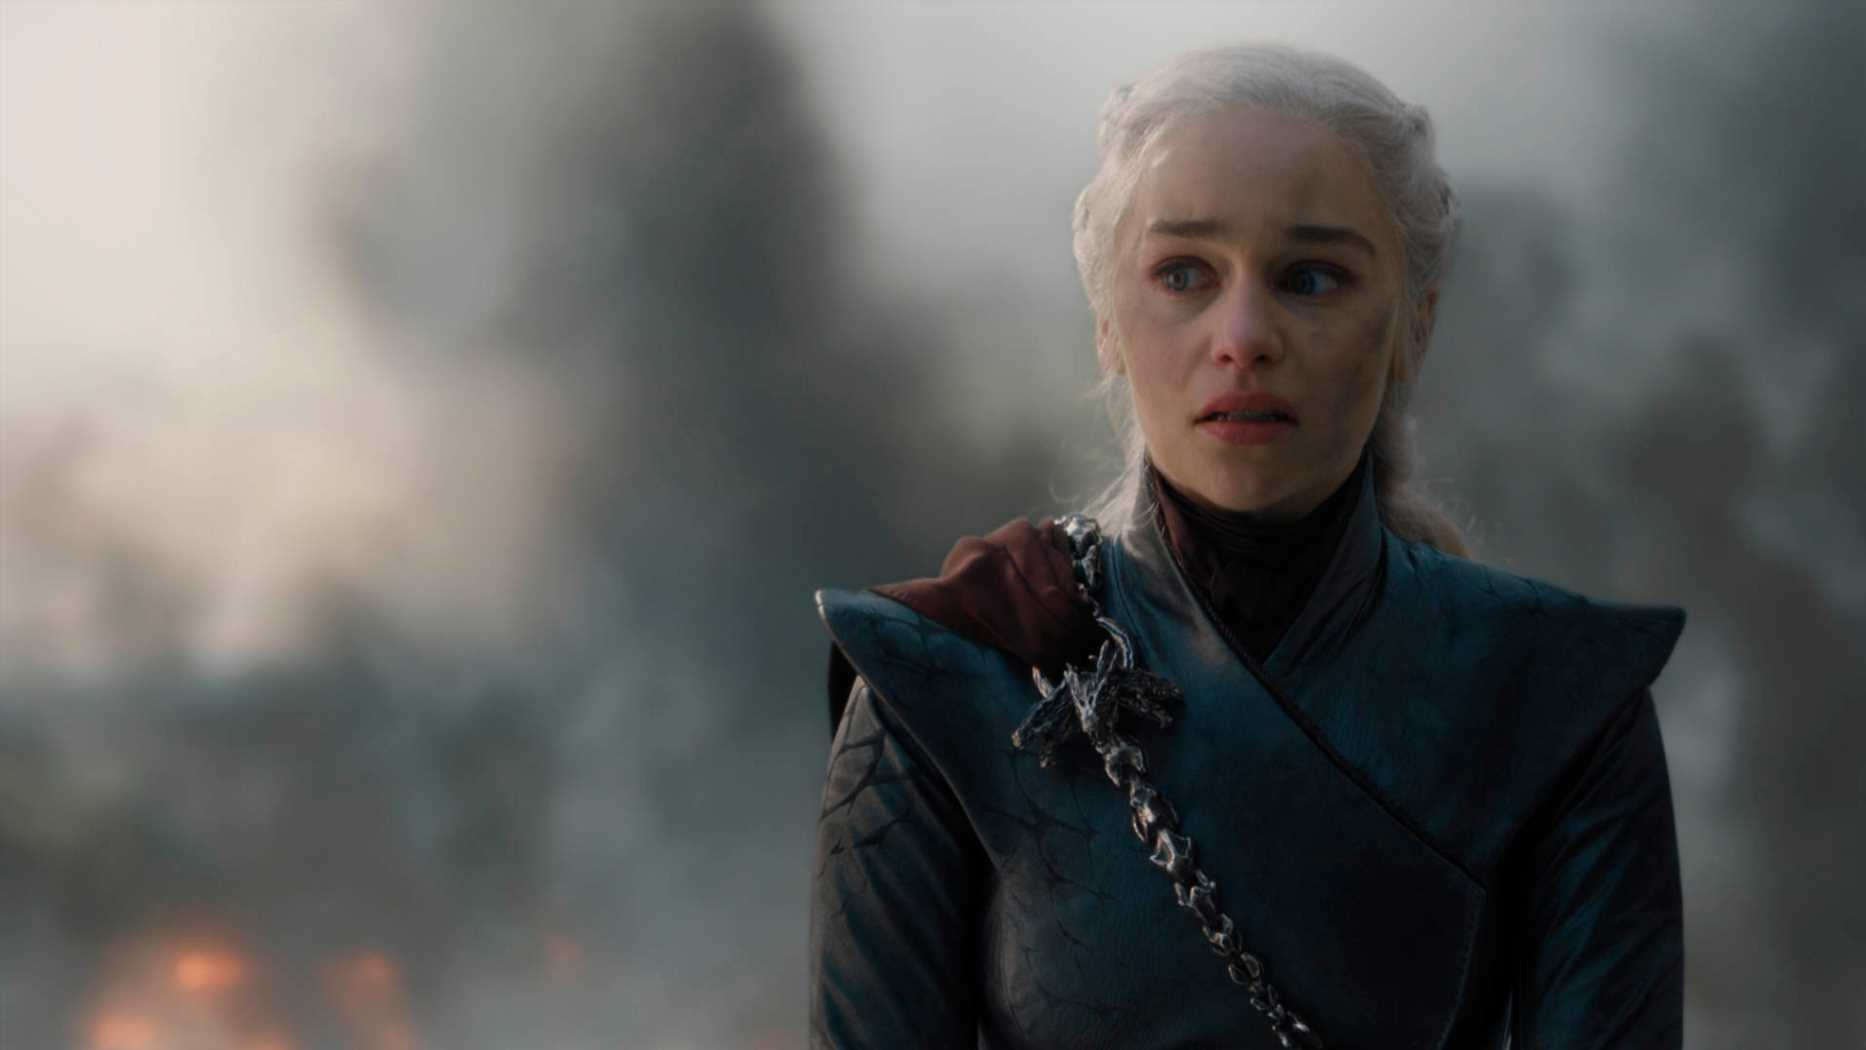 The Game of Thrones season 8 episode 6 trailer shows the aftermath of Daenerys Targaryen's attack